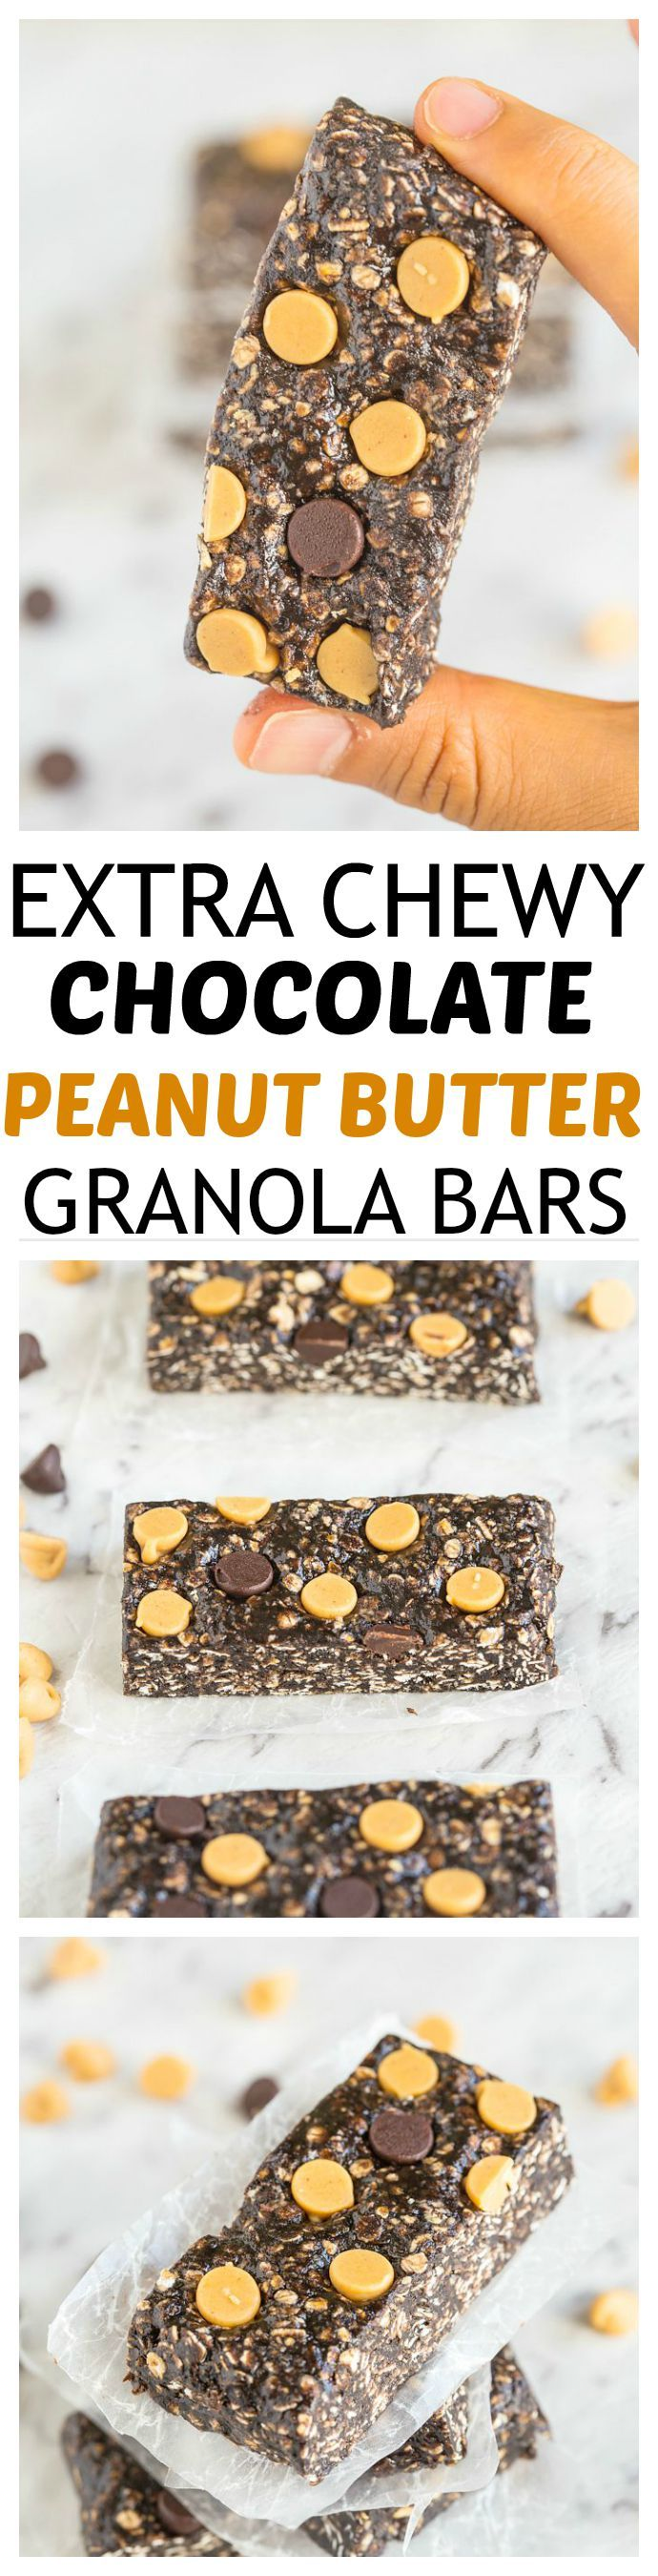 jordan bake     gluten they option   minutes  in Chewy and a   Extra ready free     are vegan    air Chocolate and Pinteres    max Peanut Bars No grams Butter over of protein Granola